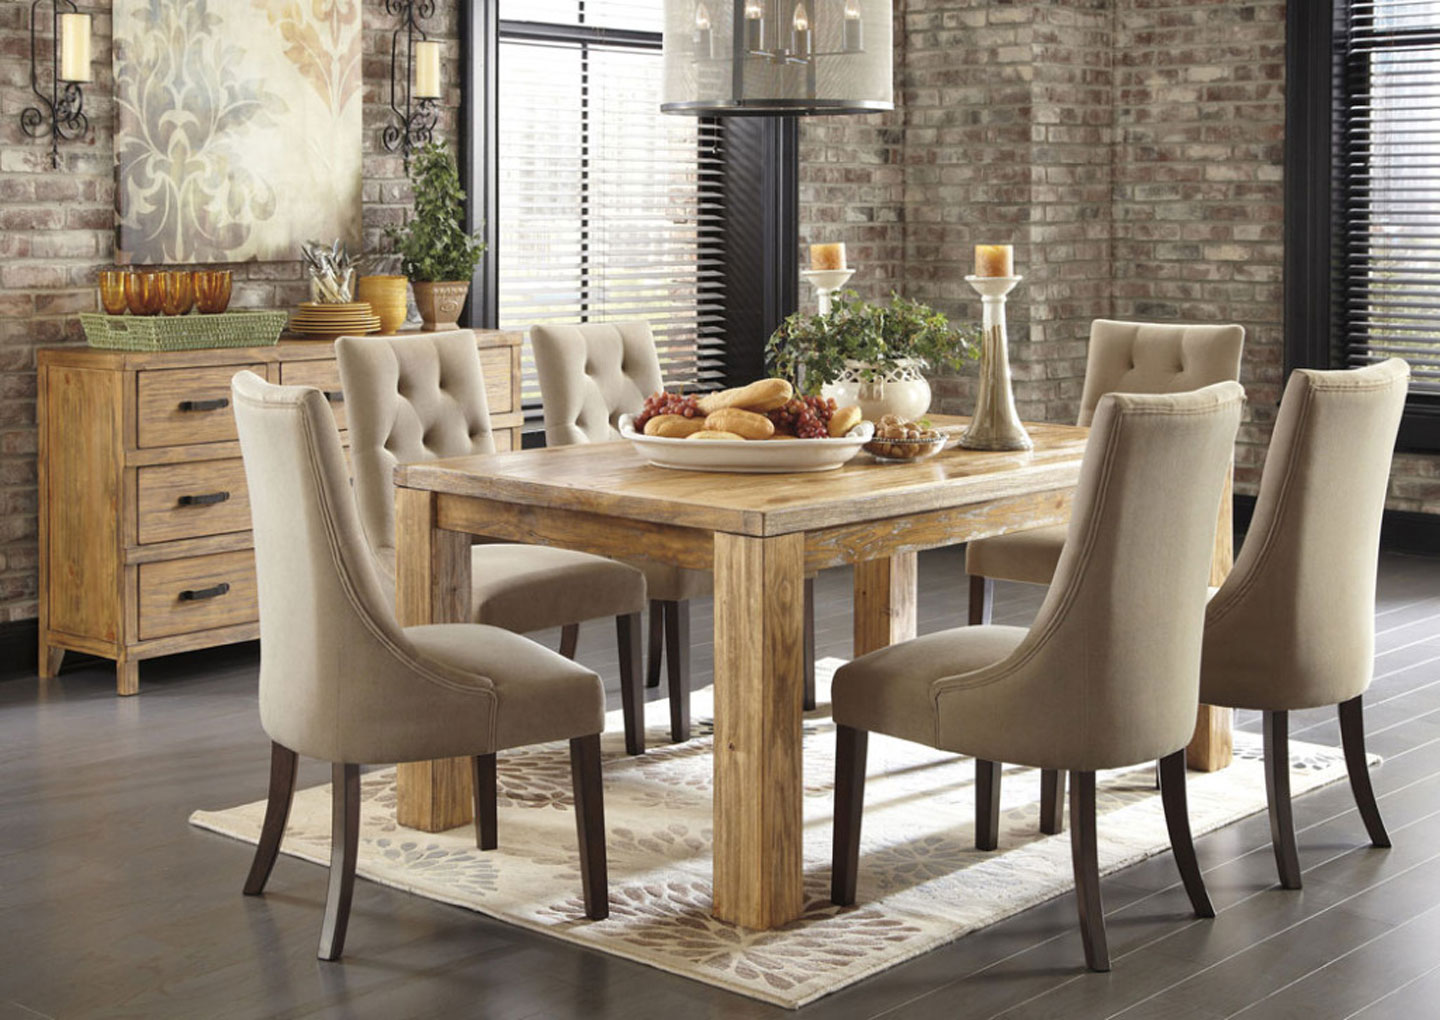 lovely upholstered dining room chairs sets with fabric cool decor  inspiration breathtaking vxwzjxx